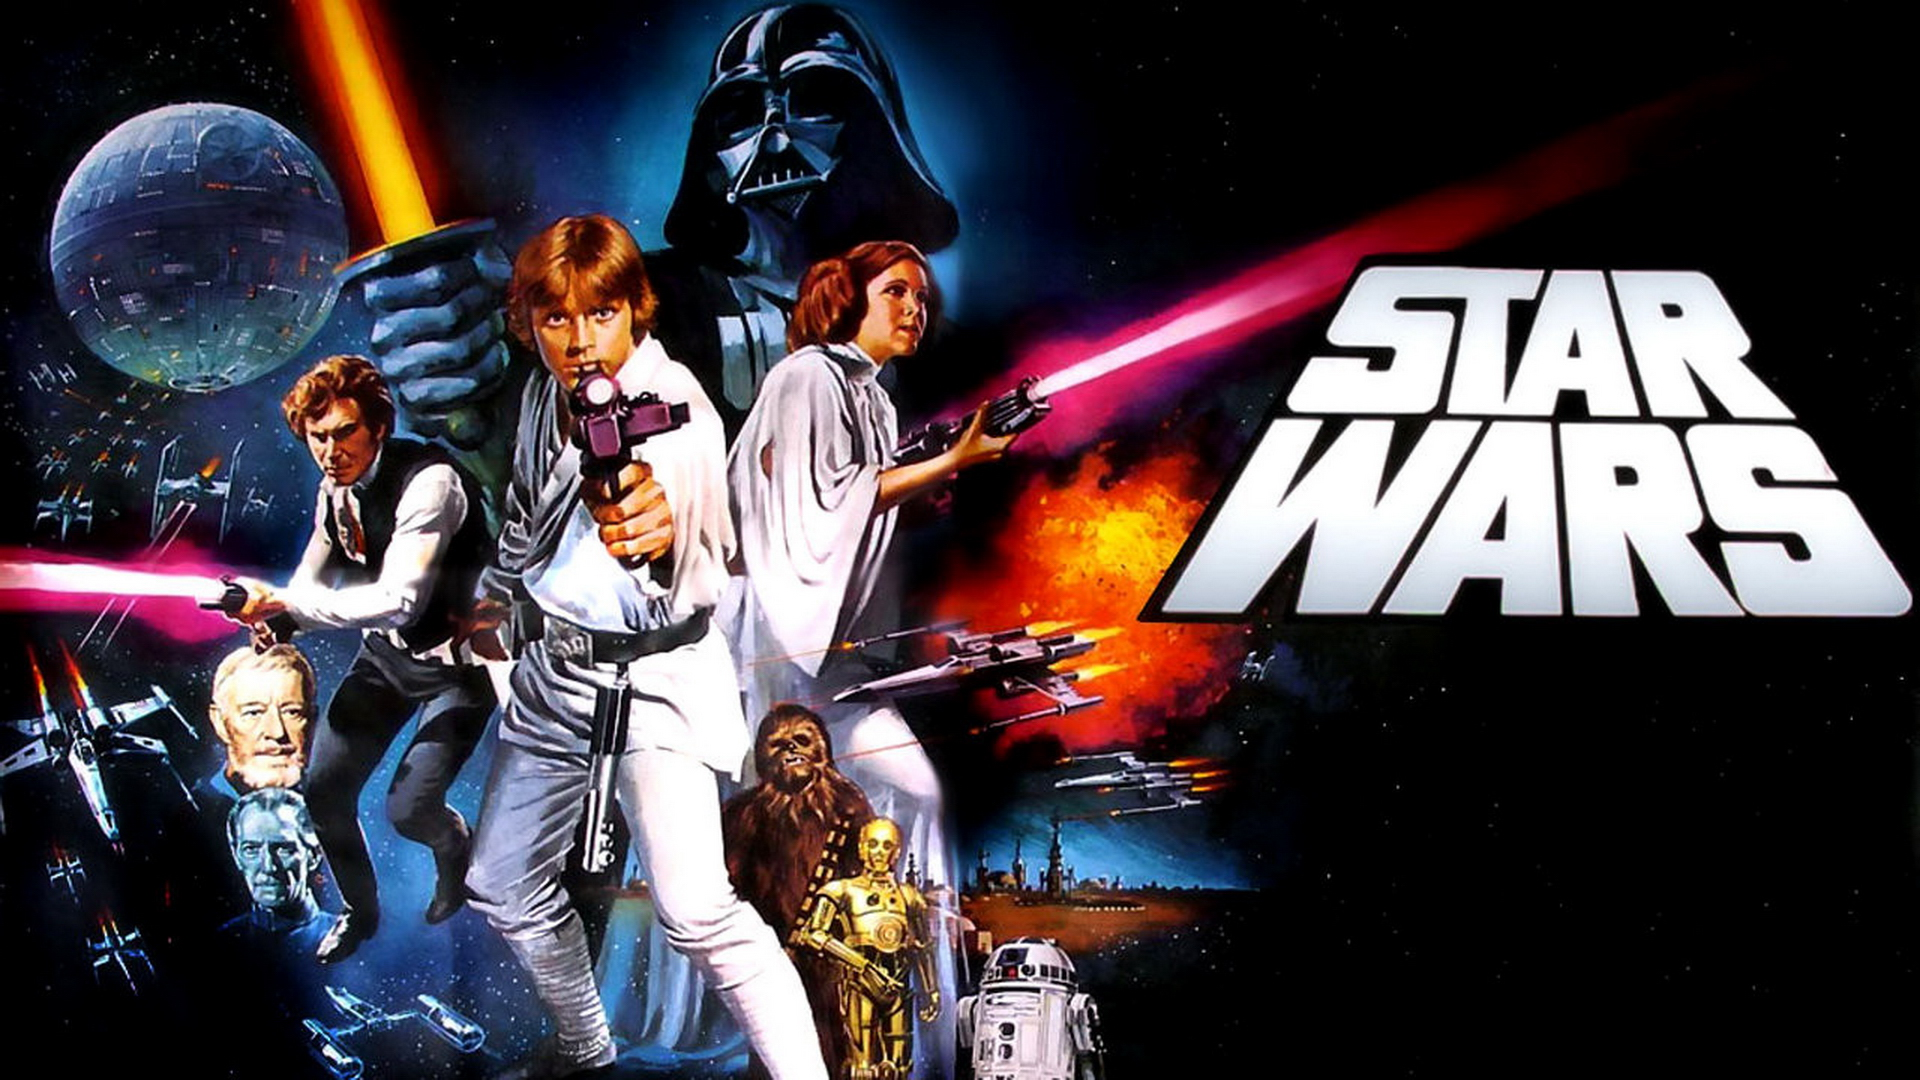 Star Wars Episode IV A New Hope Wallpaper HD 1080p 6 HD Desktop 1920x1080